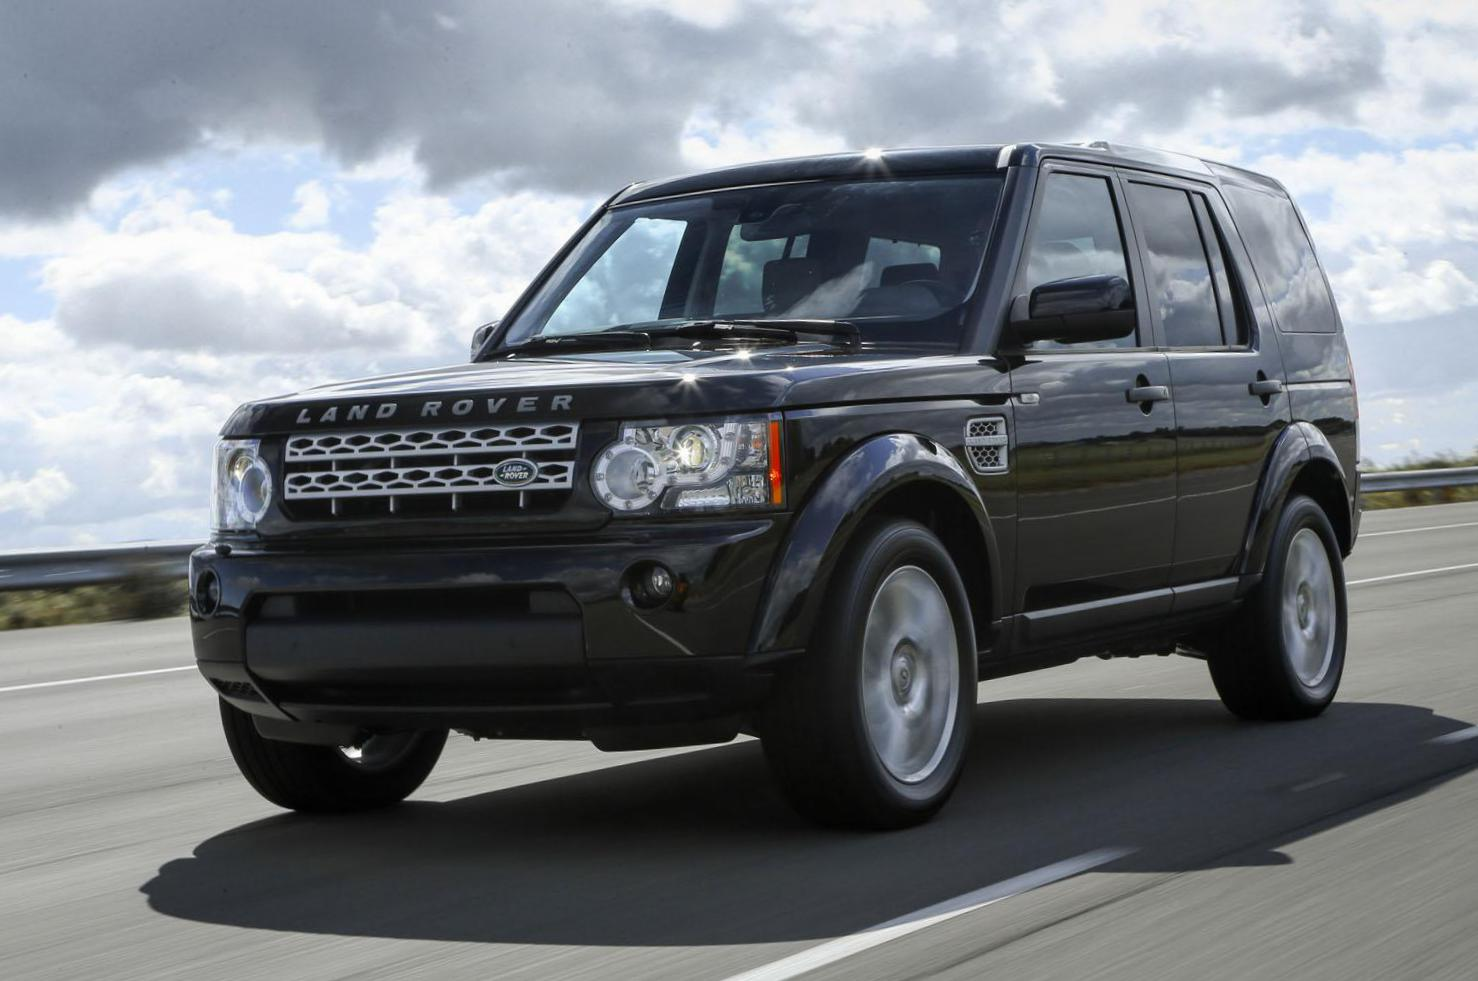 Discovery 4 Land Rover cost 2013